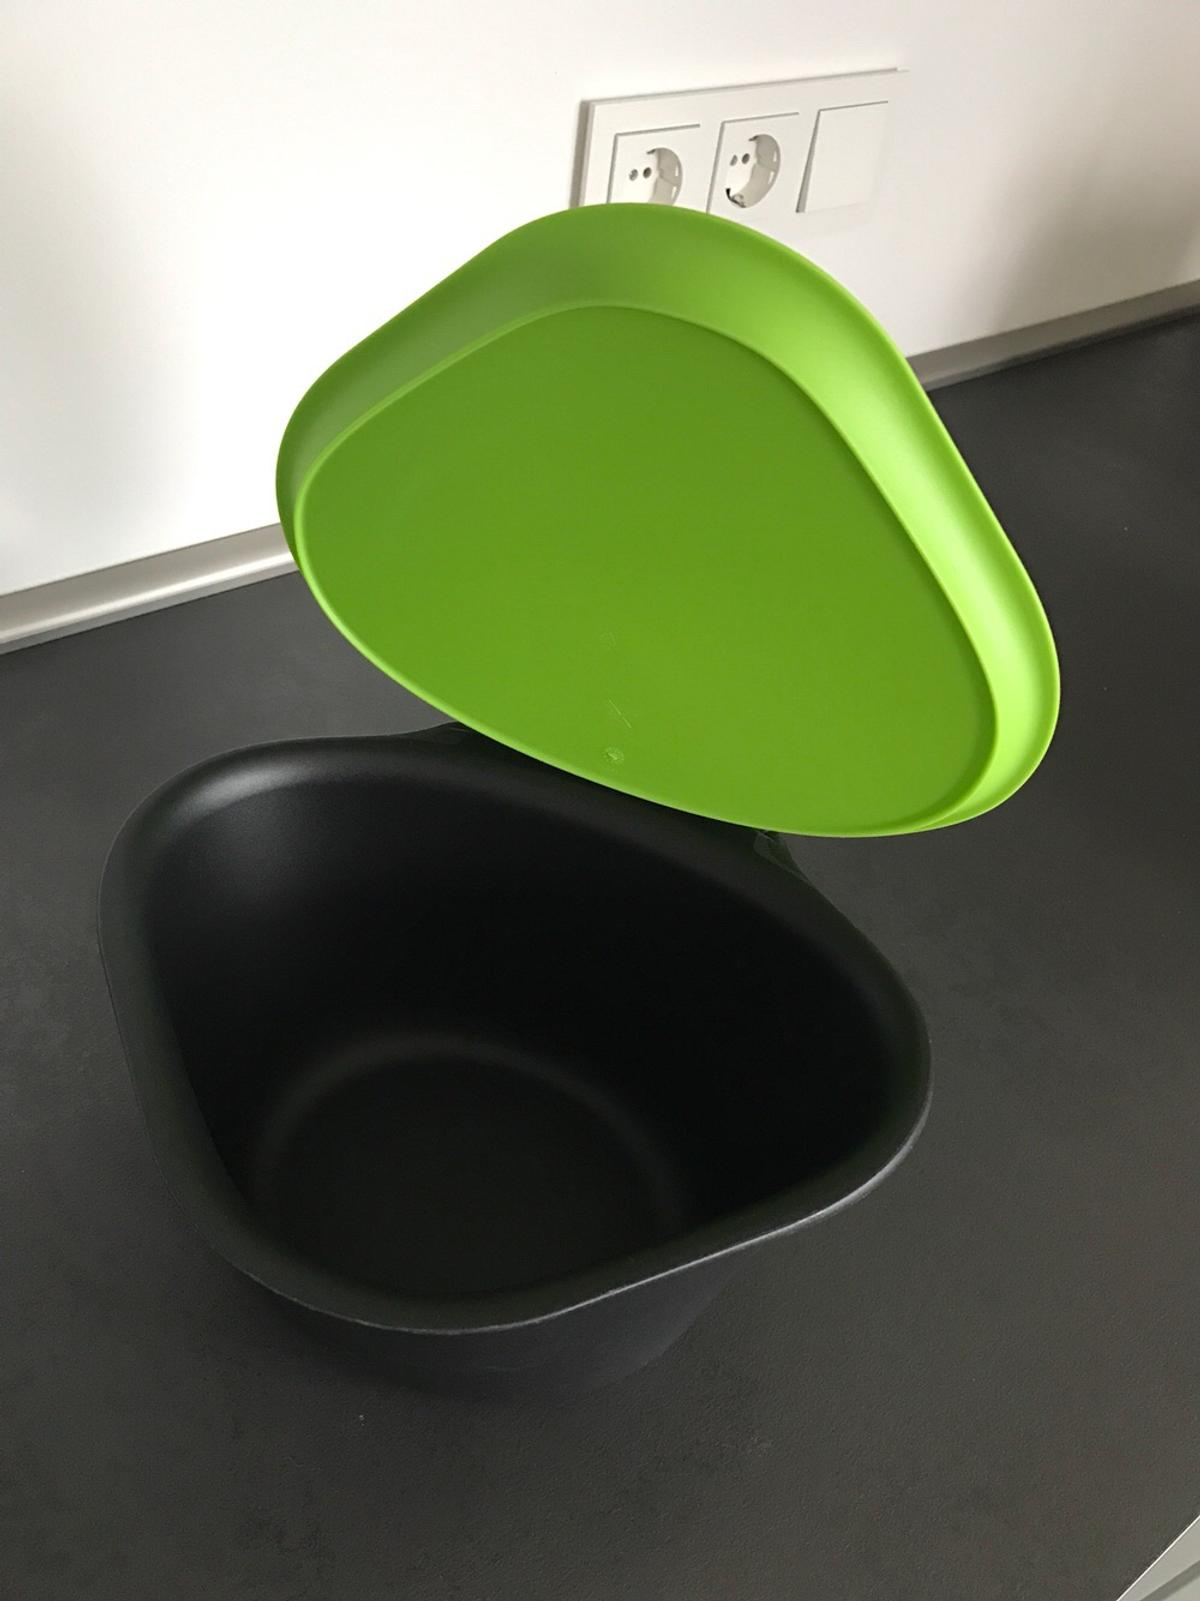 Bio Mülleimer Tupperware Adretto (bio-mülleimer) In 84061 Ergoldsbach For €15.00 For Sale | Shpock